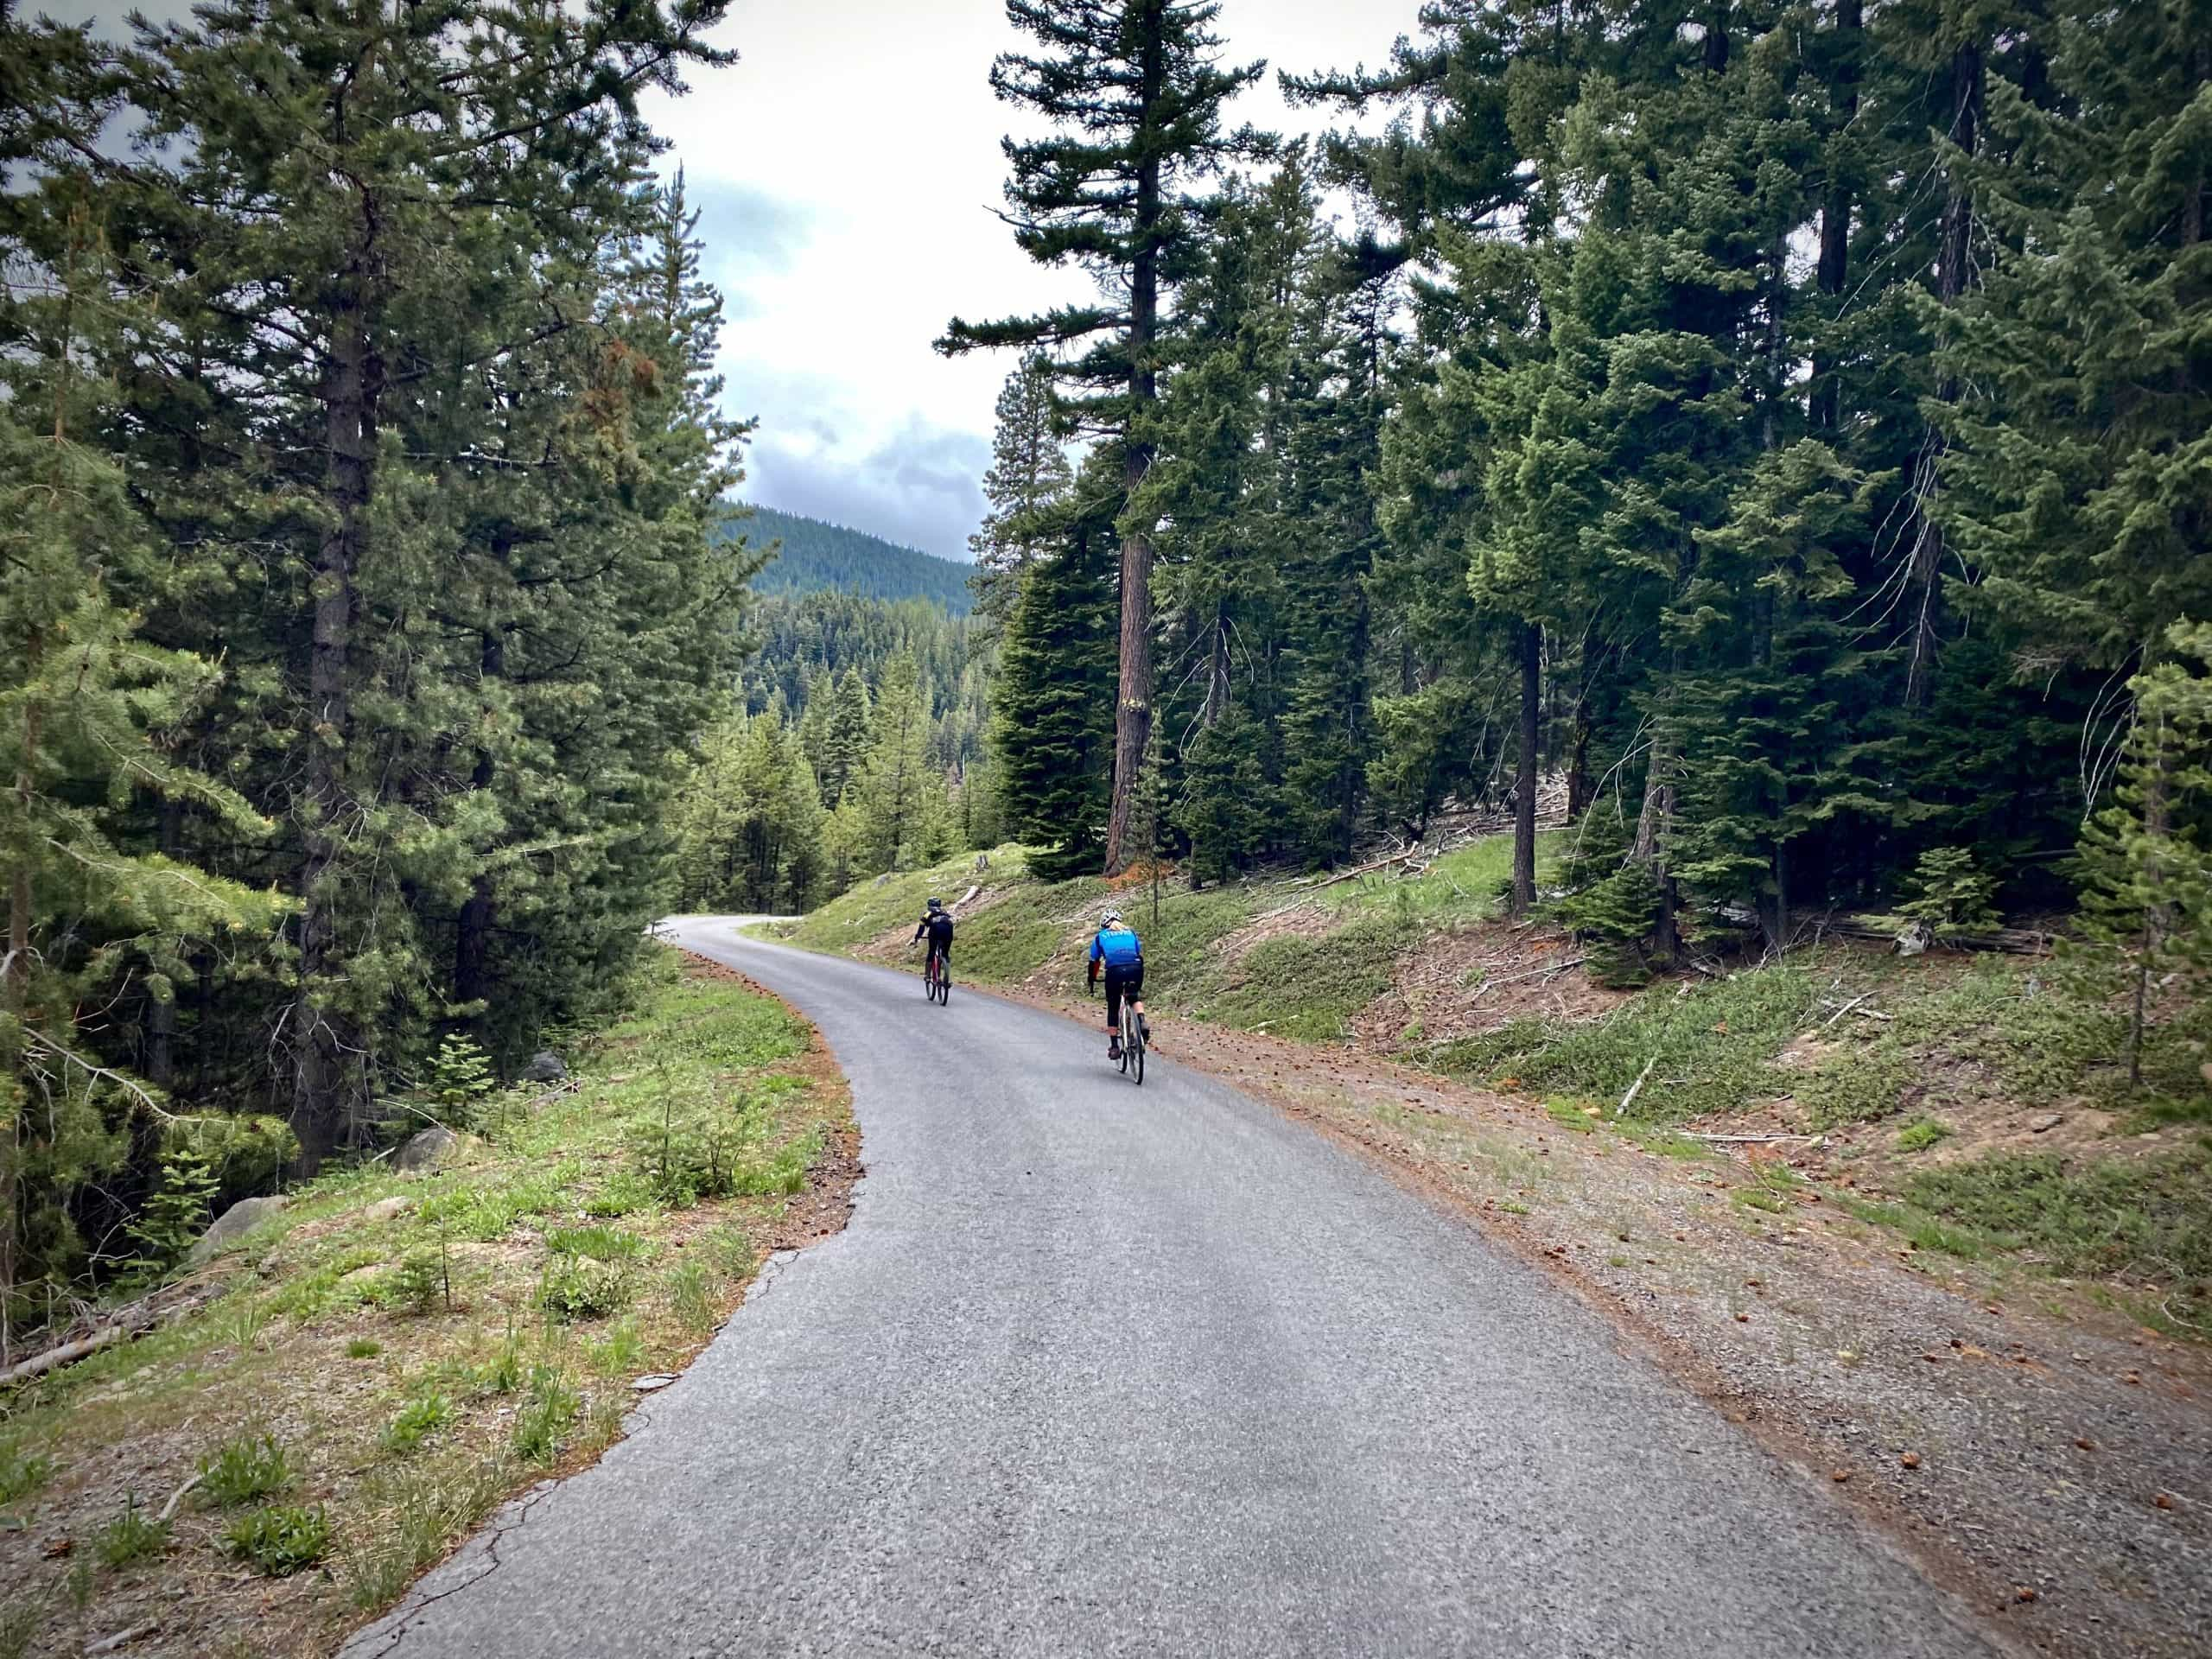 Two women cyclists descending NF 4420 paved road near Dufur, Oregon.